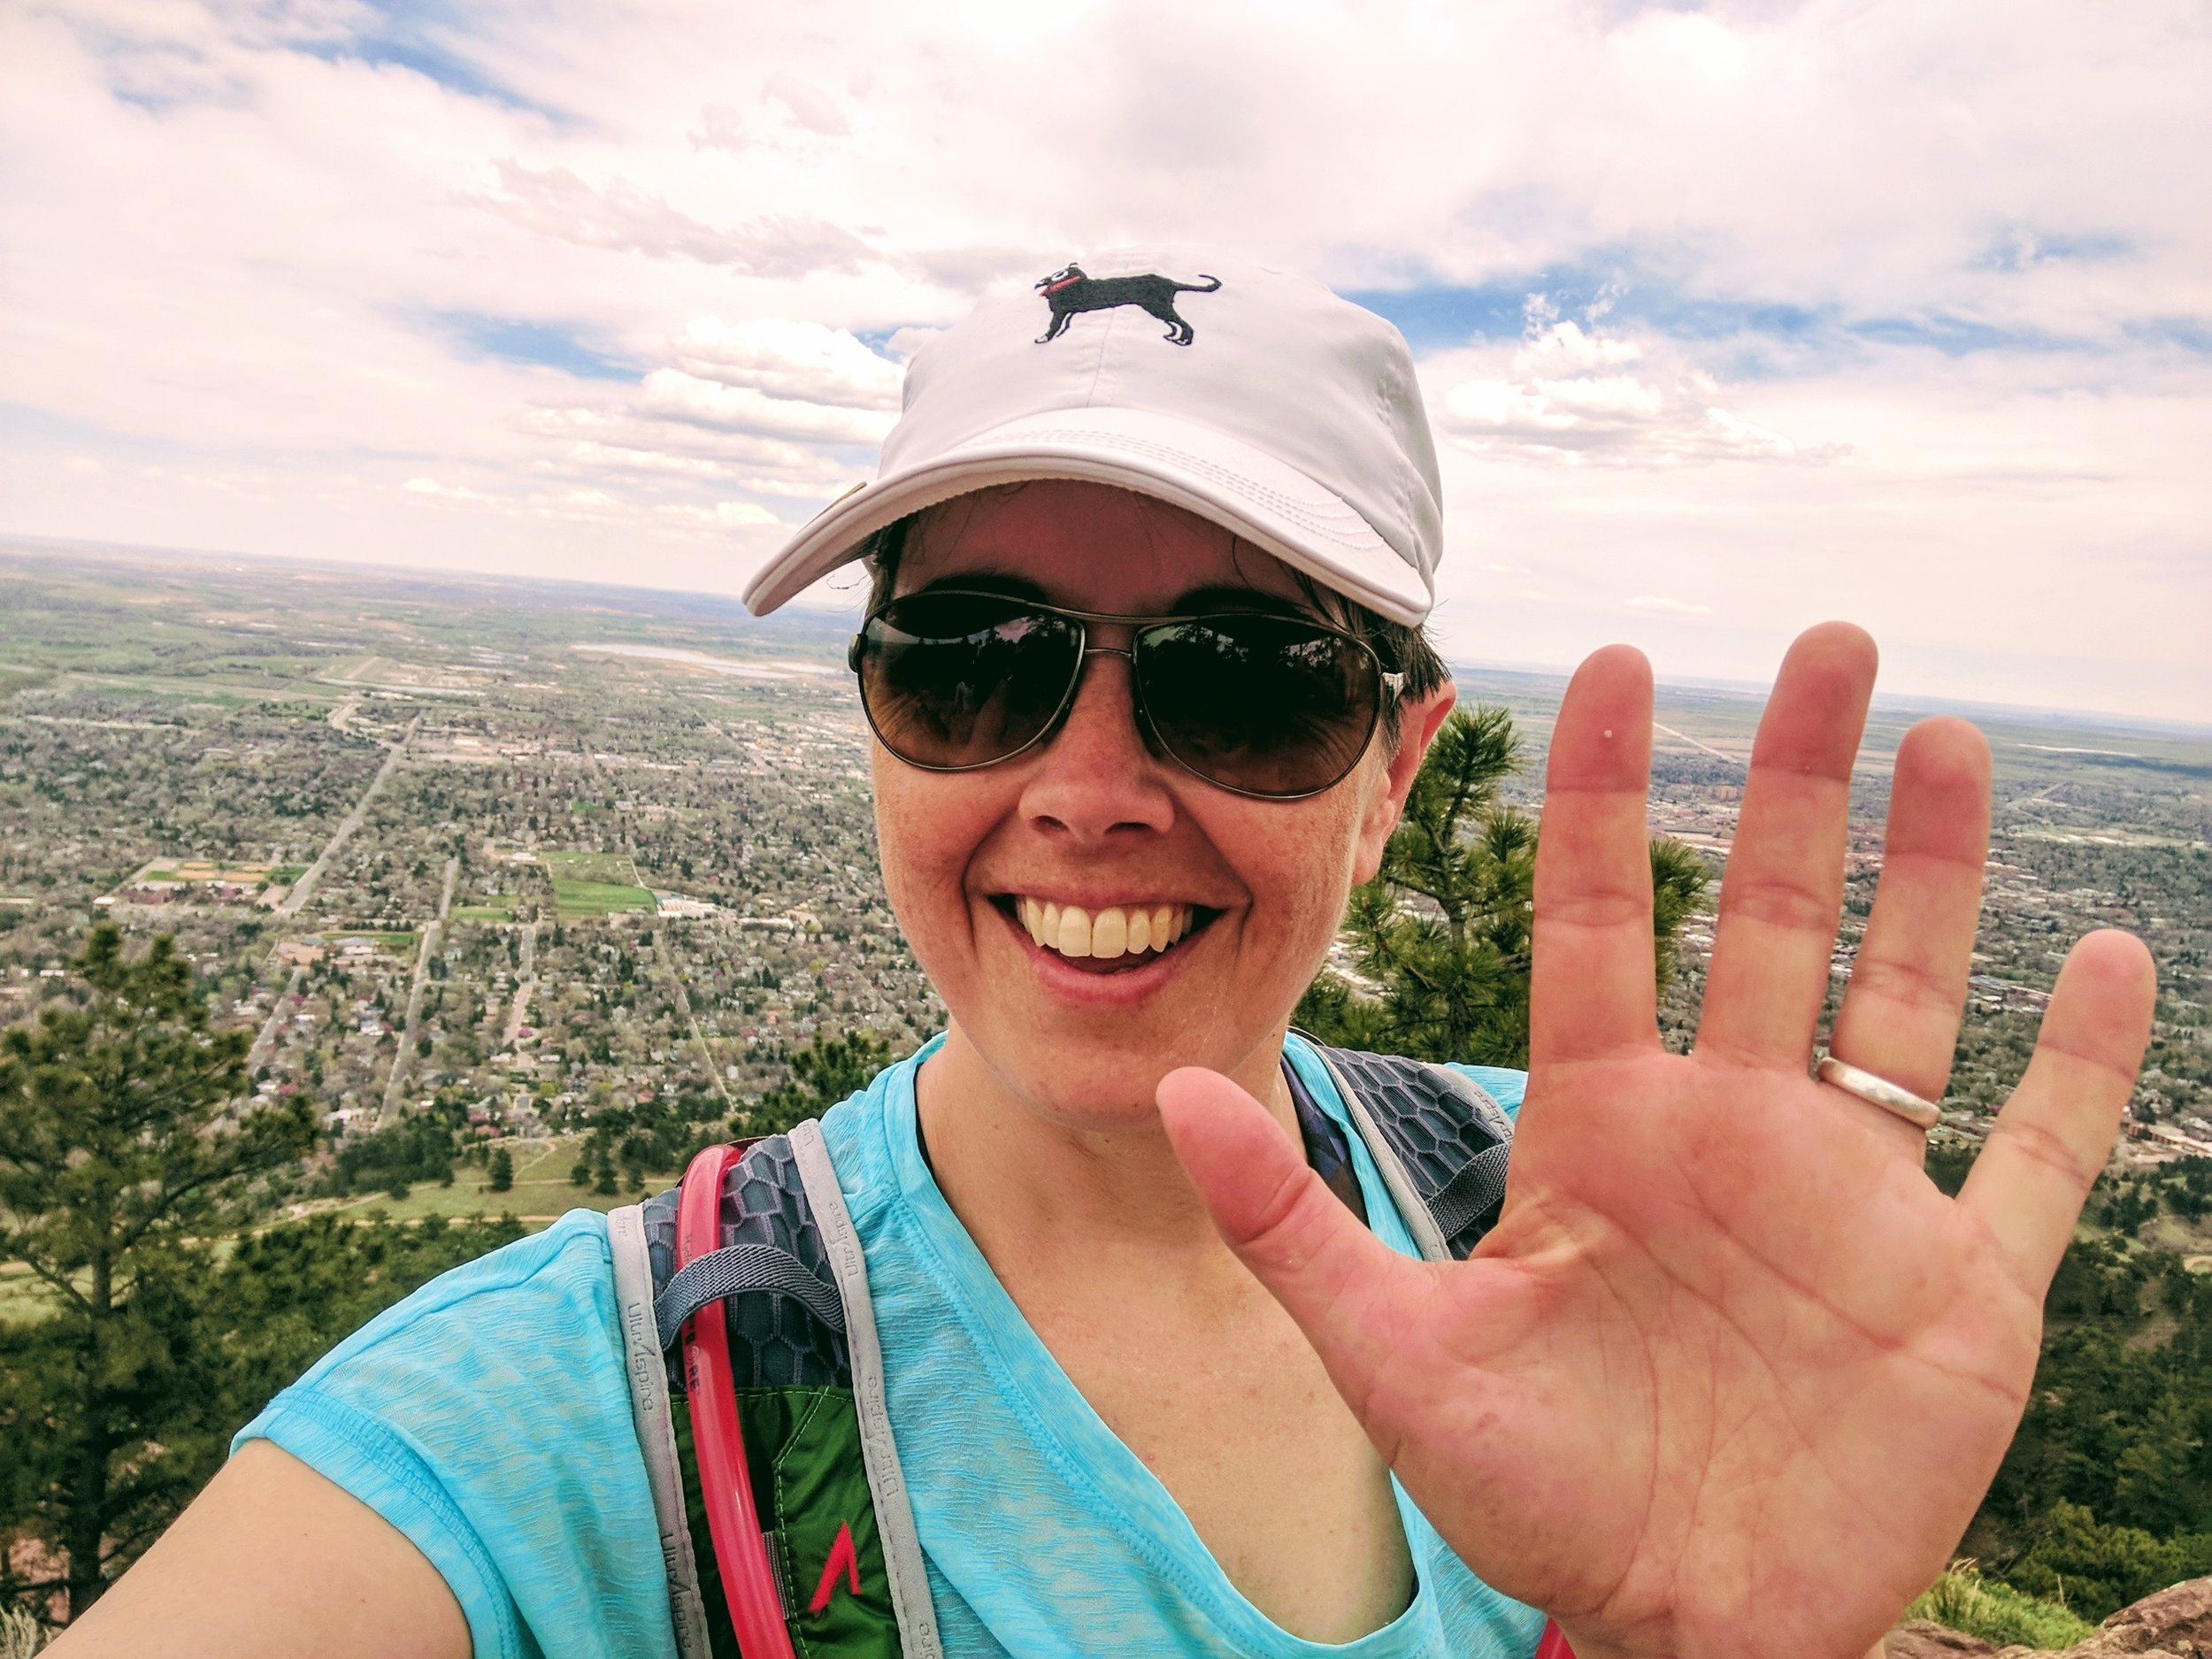 WHOO HOO! Mt. Sanitas, at 6,843', is the lowest of the five summits, but felt SO good to complete.